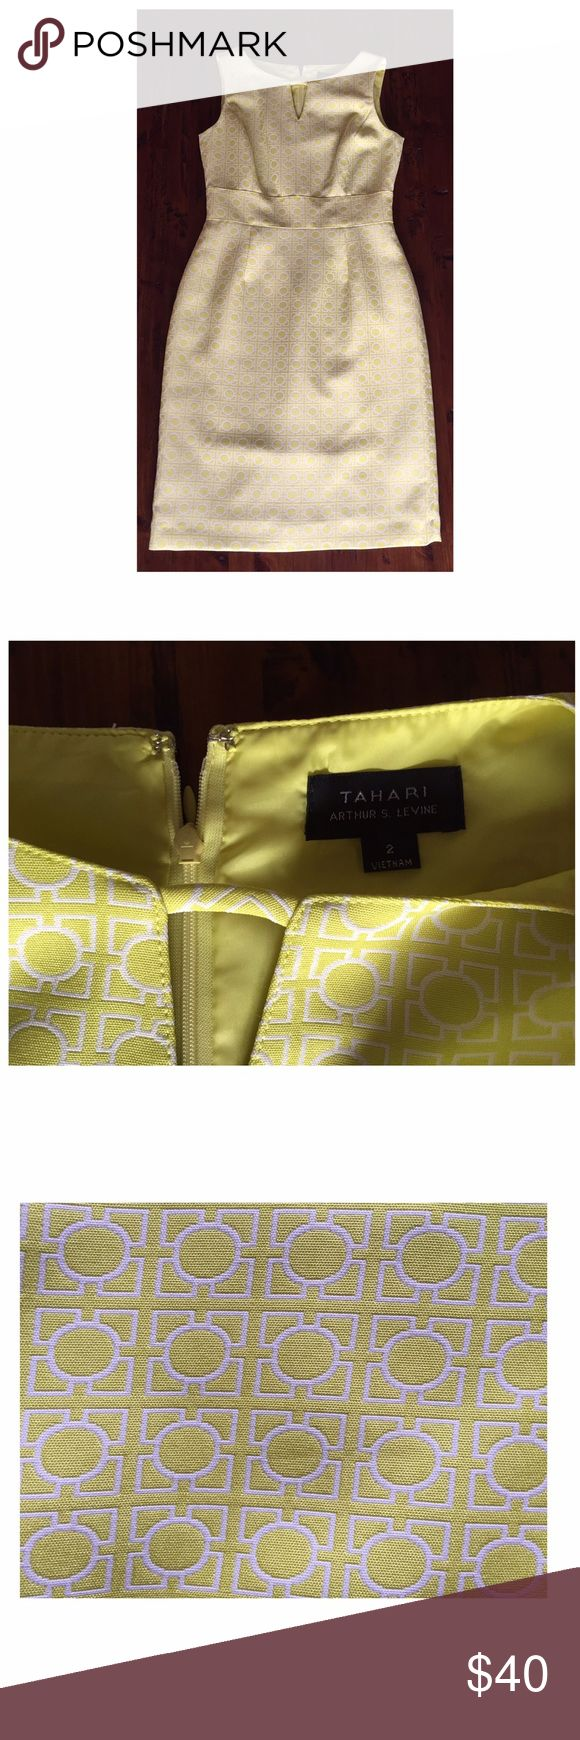 Chartreuse Tahari Sheath Dress Beautiful yellow green colored dress! Jacquard material, true color shown in close up pic. Wore one time for a wedding and in excellent condition. Smoke free home. No trades, please. Tahari Dresses Midi